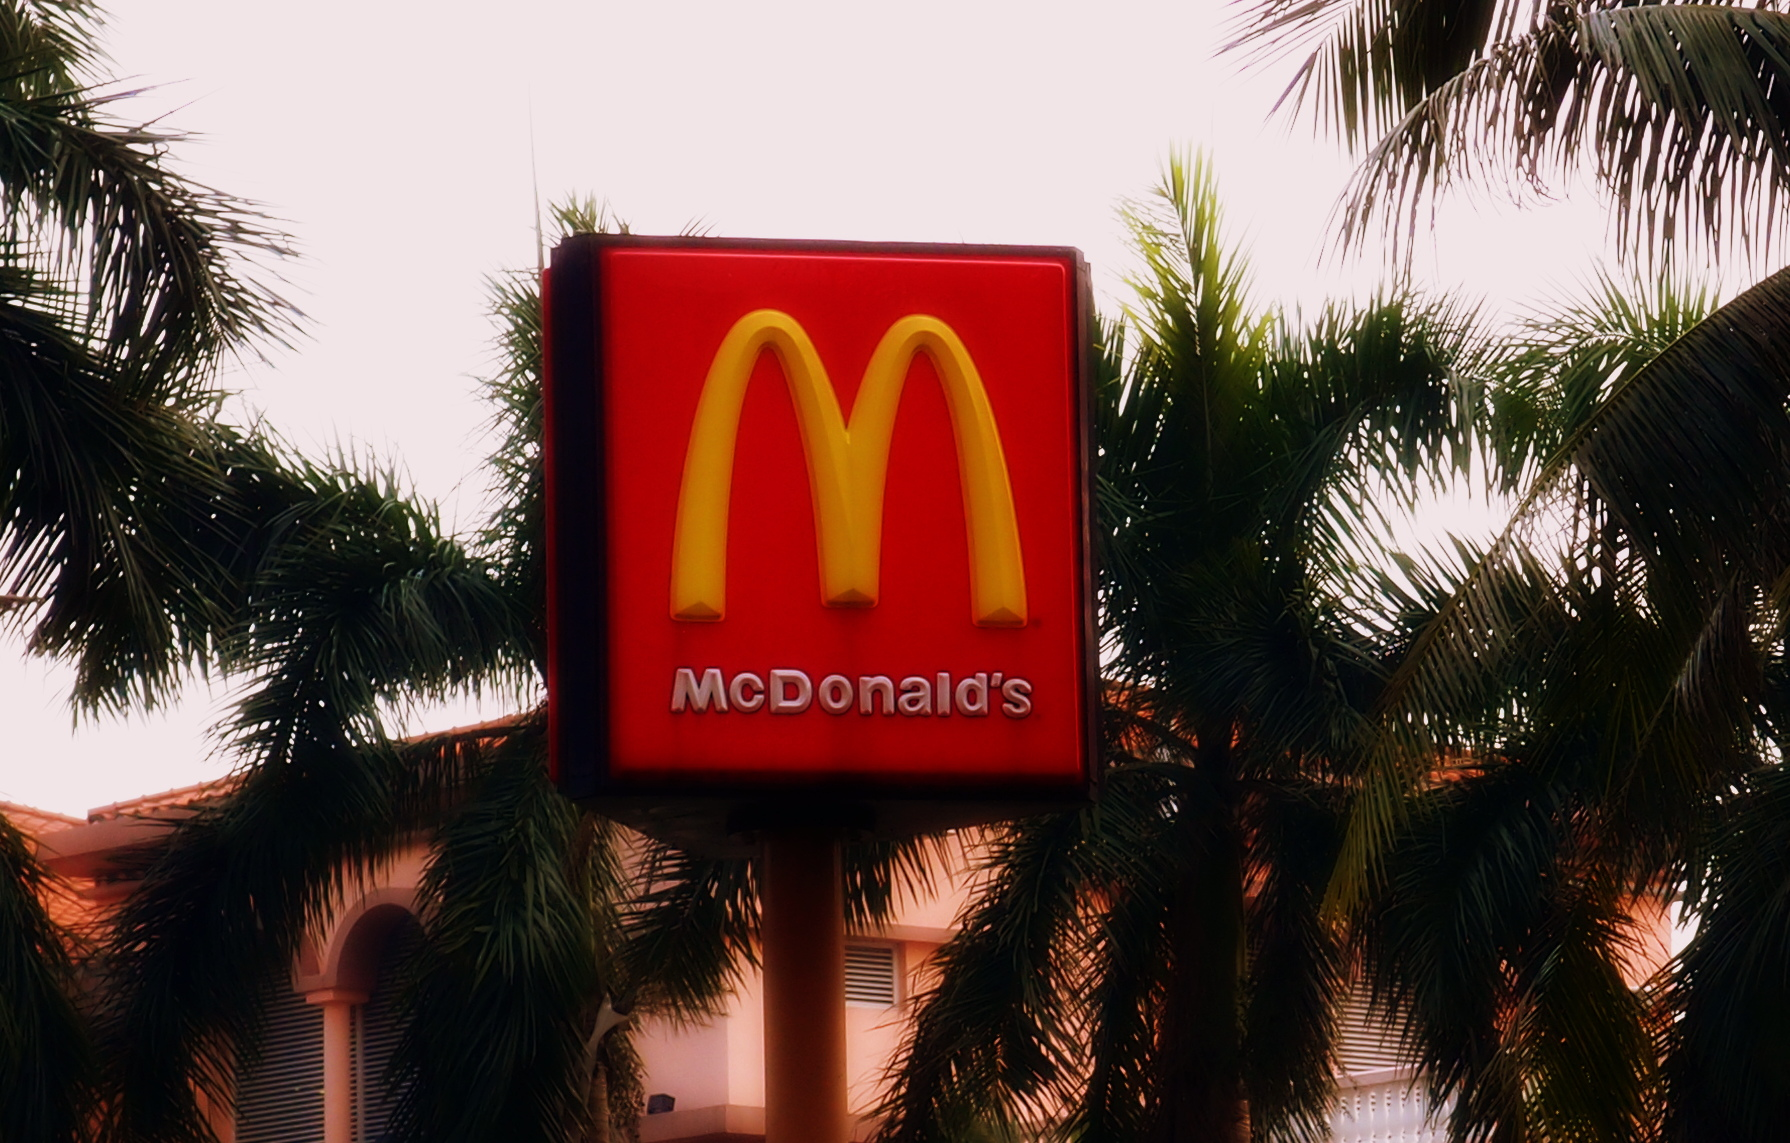 The golden arches of McDonald's - at last count we have 236 of them and many are 24/7 - simply incredible. This one is at the Gold Coast in Tuen Mun.